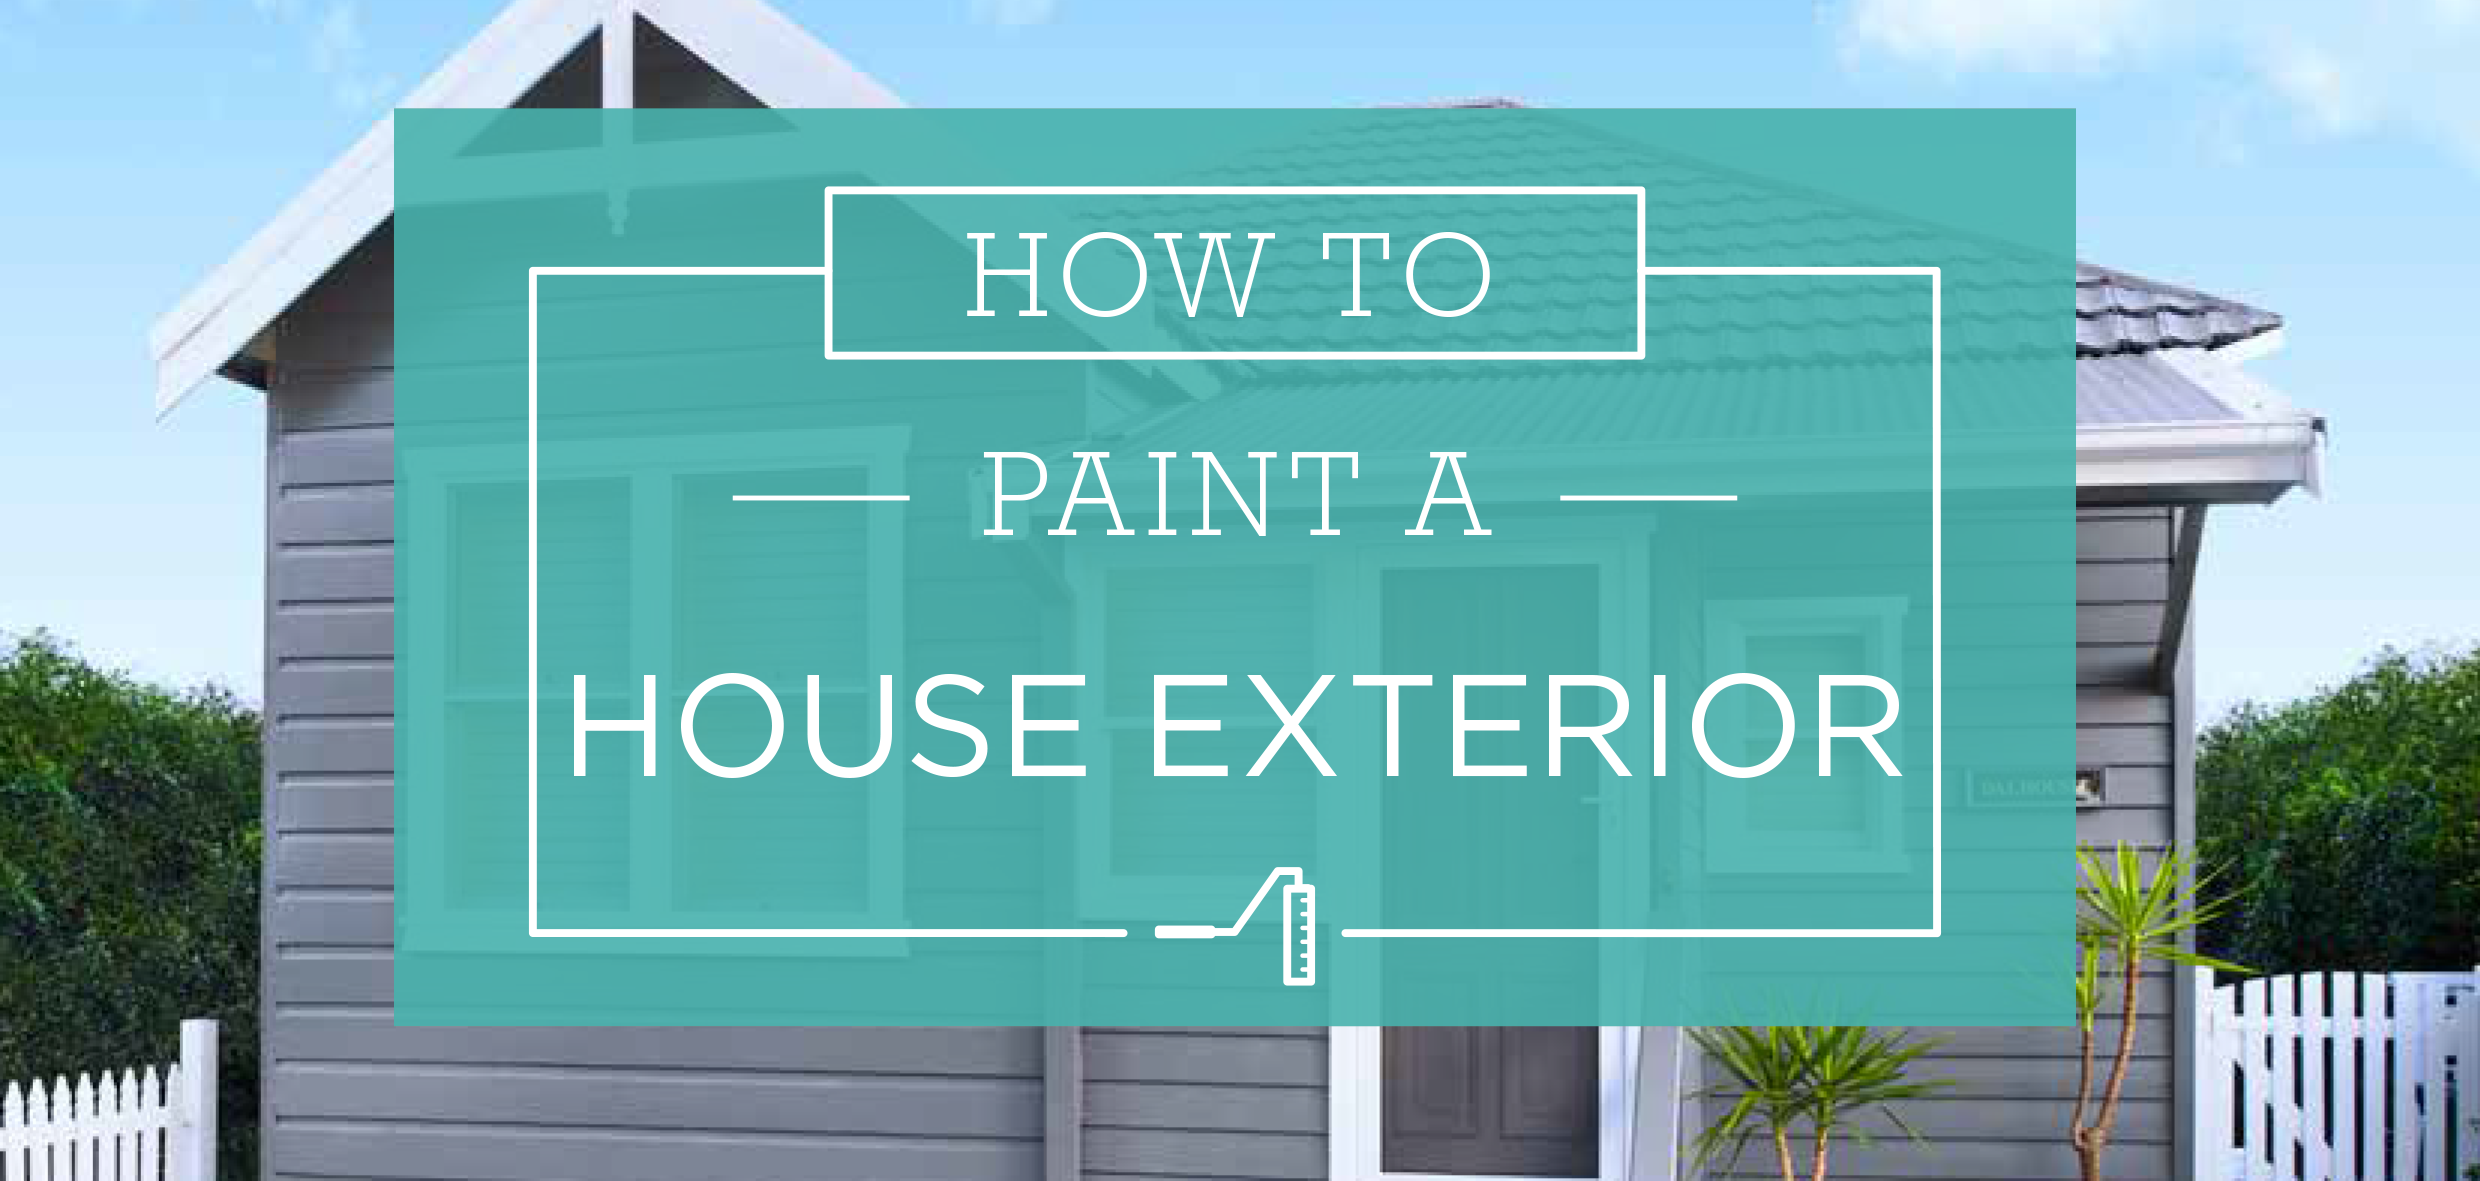 How To Paint A House Exterior